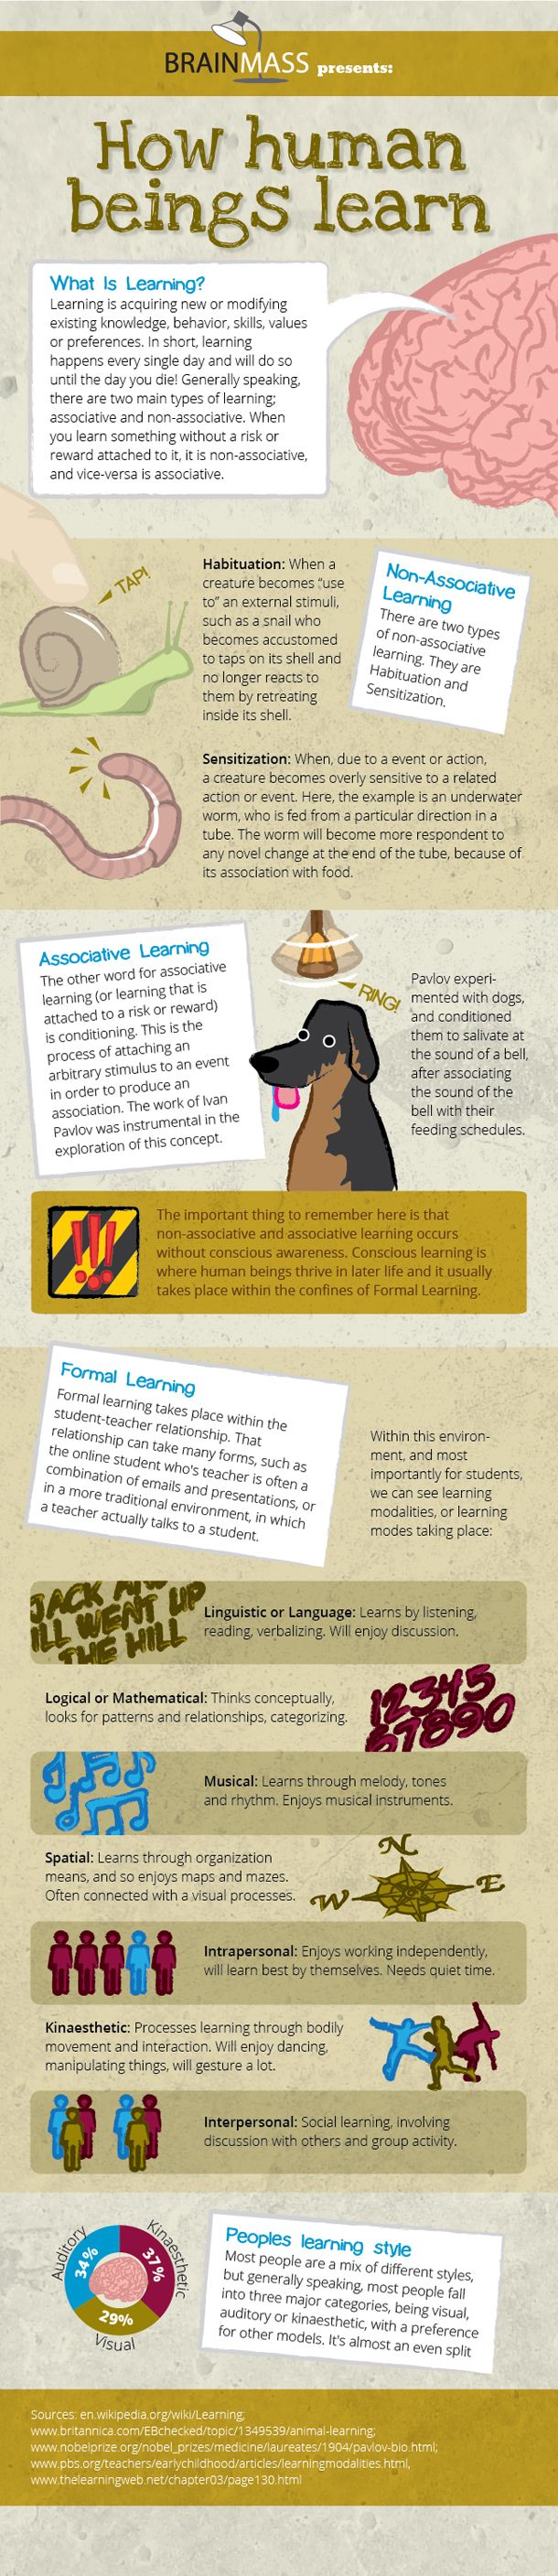 How Human Beings Learn[INFOGRAPHIC]